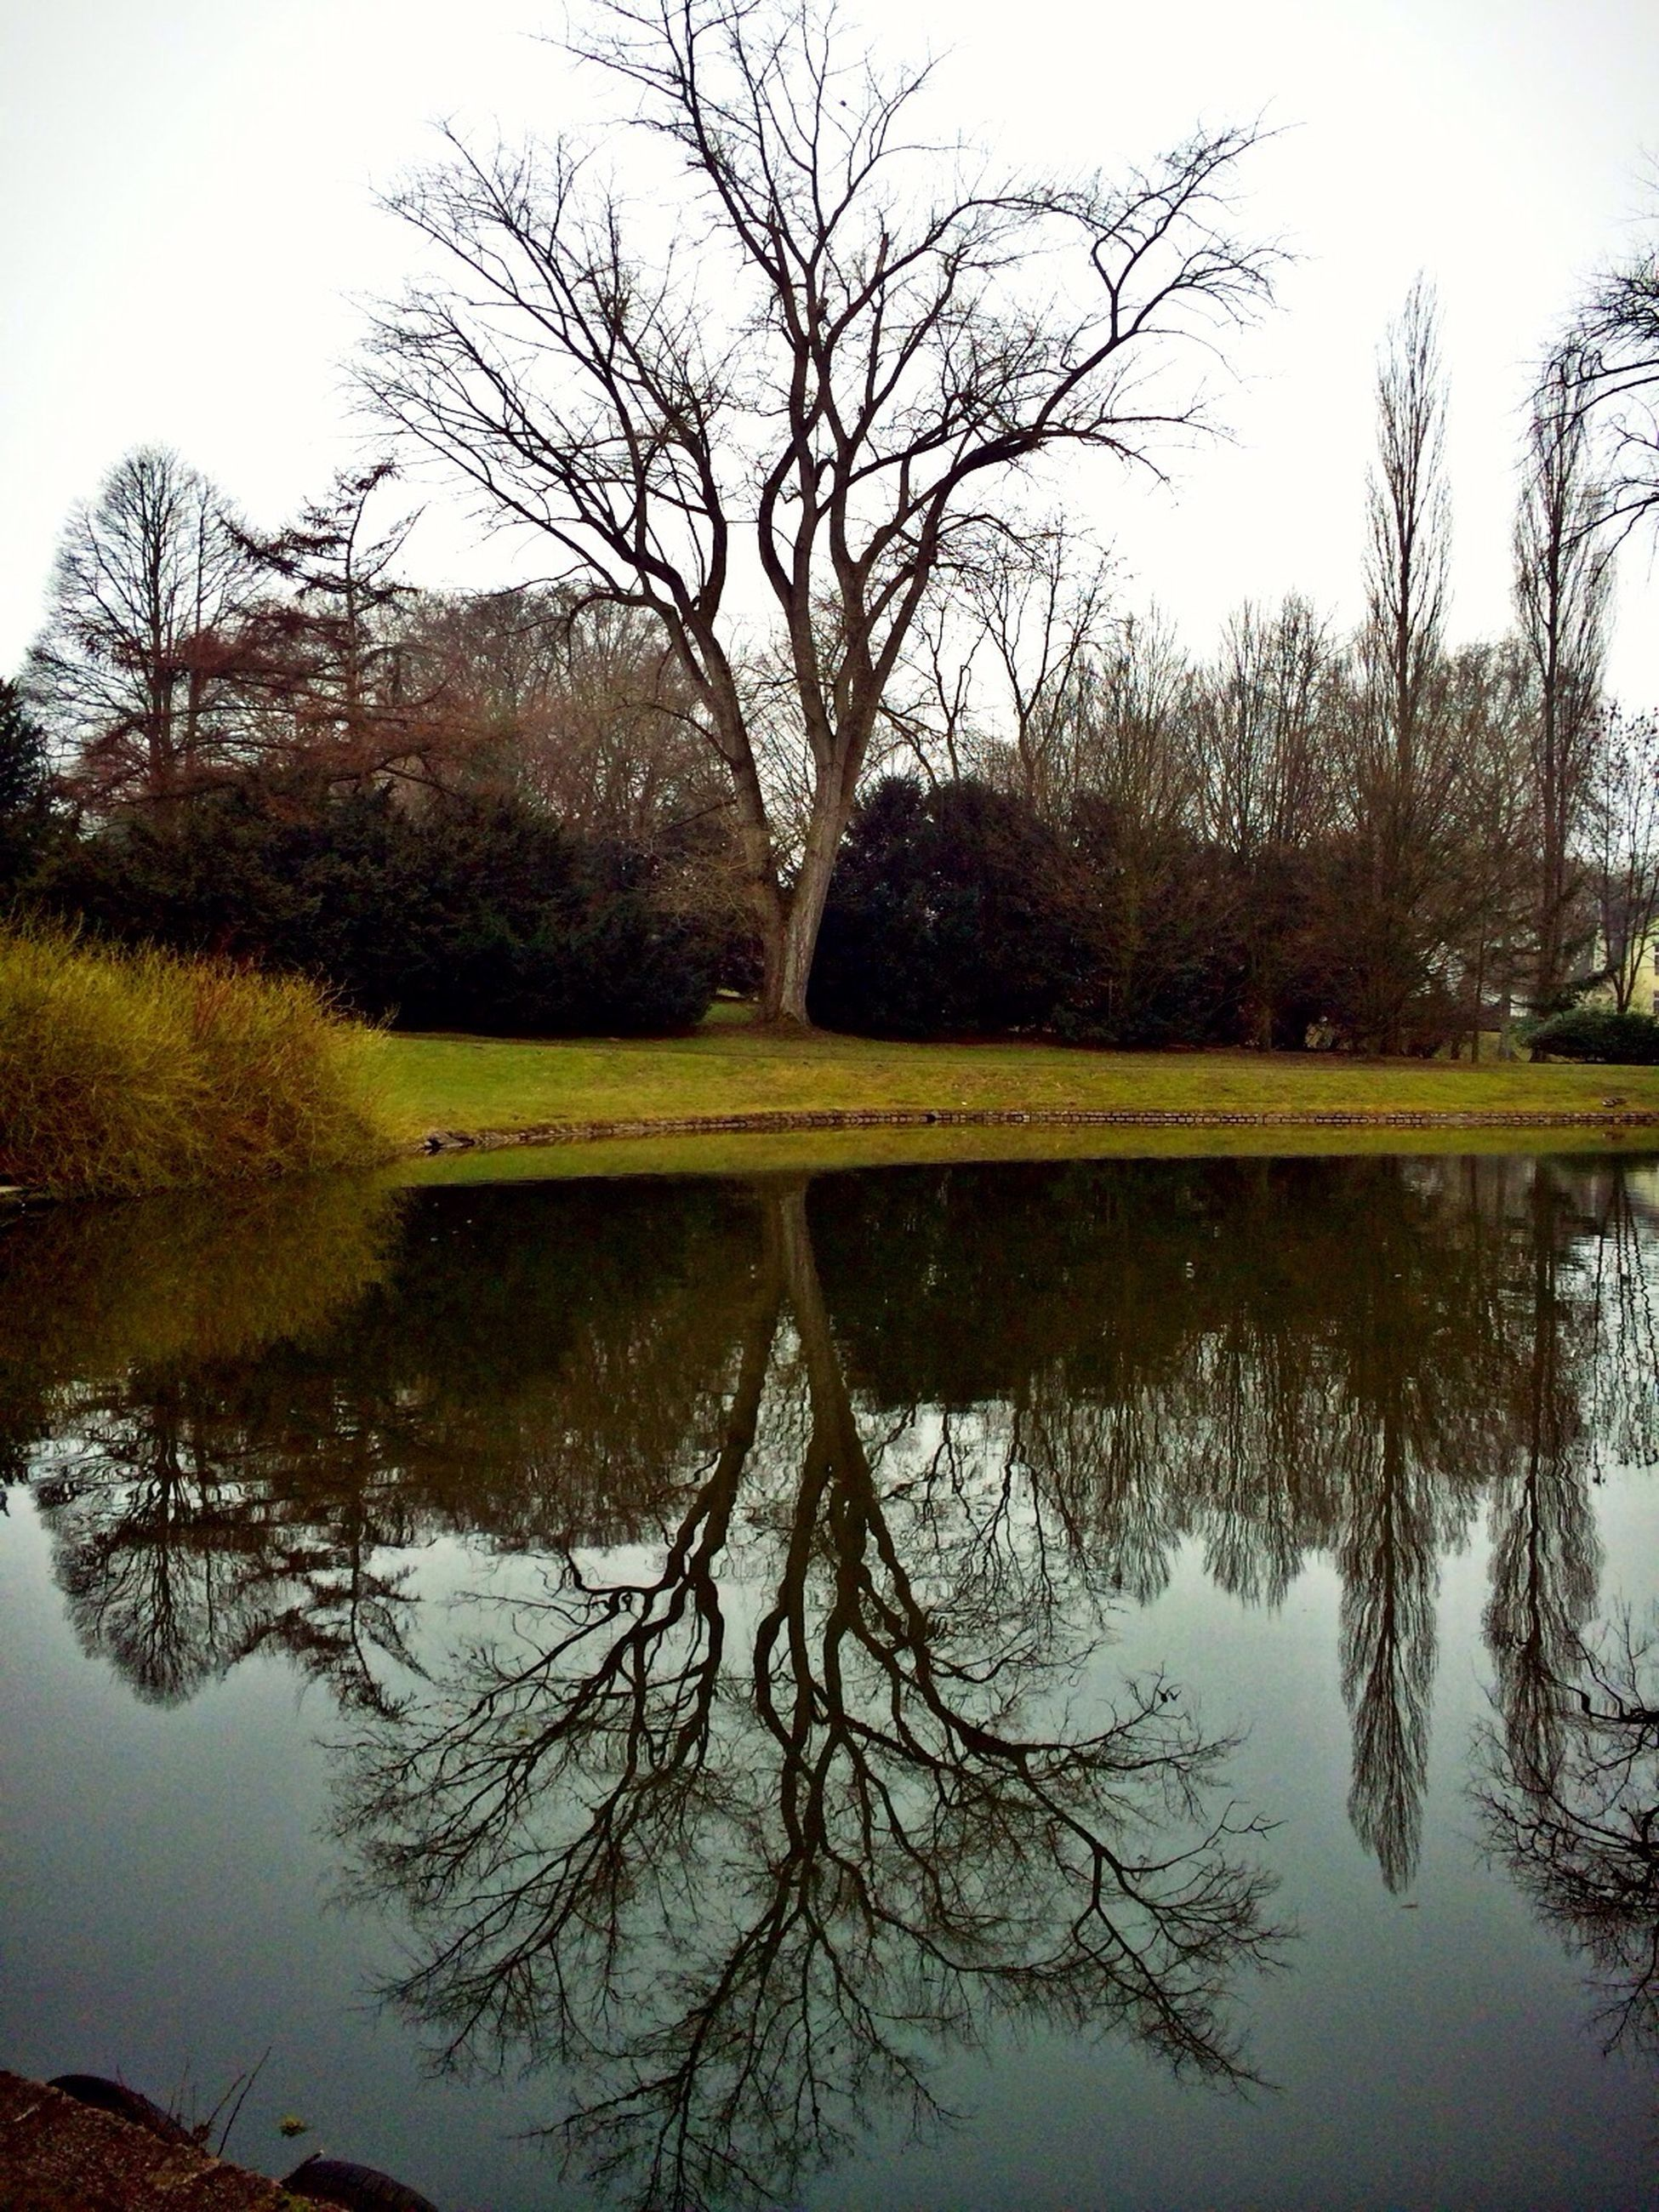 tree, reflection, water, lake, tranquility, tranquil scene, scenics, beauty in nature, bare tree, waterfront, nature, clear sky, branch, standing water, sky, growth, idyllic, day, calm, outdoors